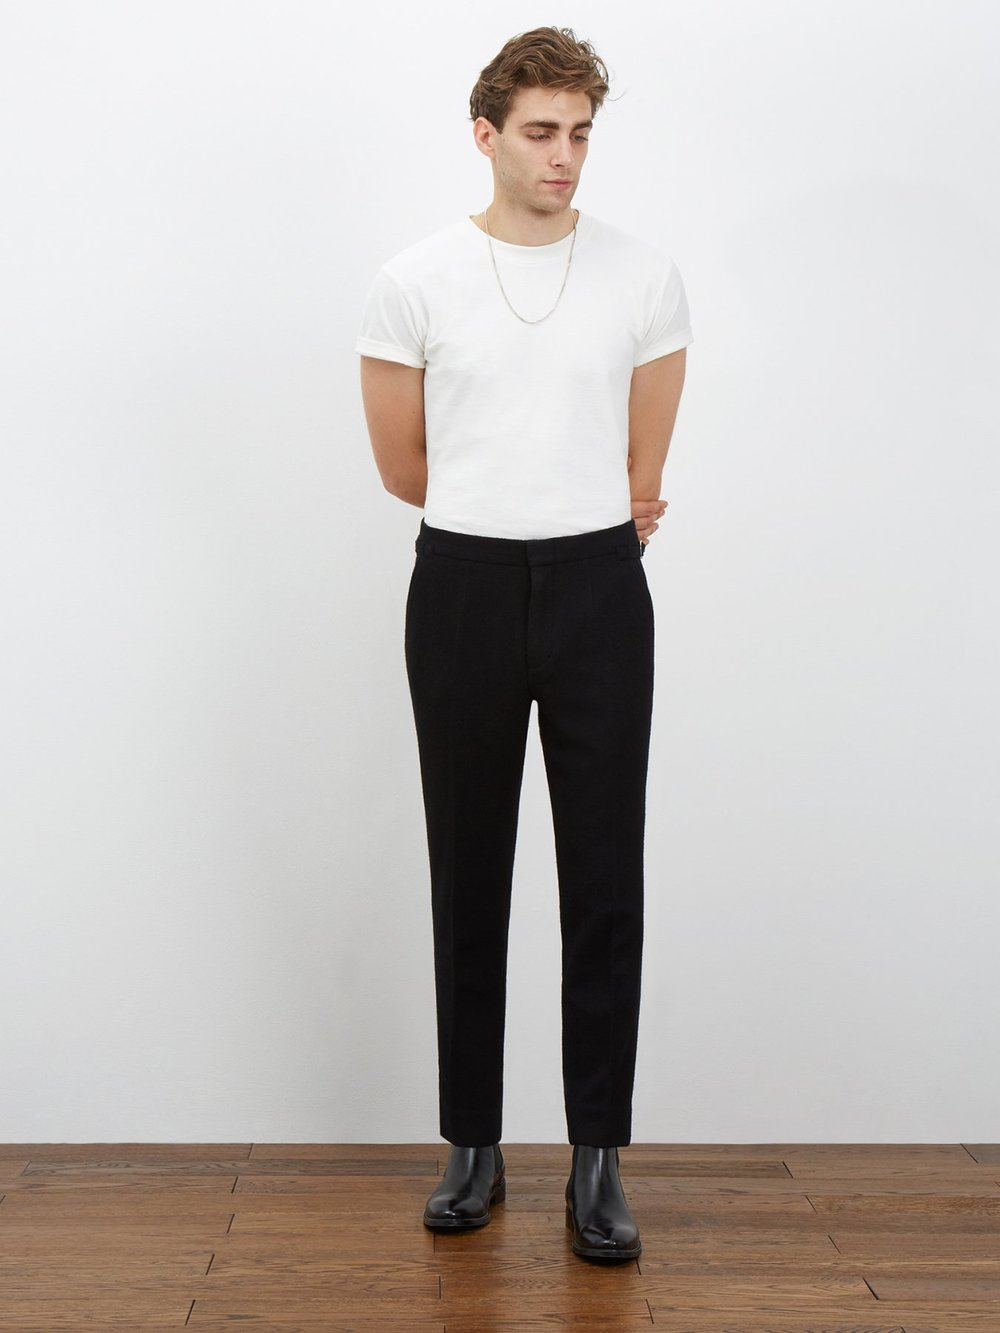 Basic Rights trousers - £175